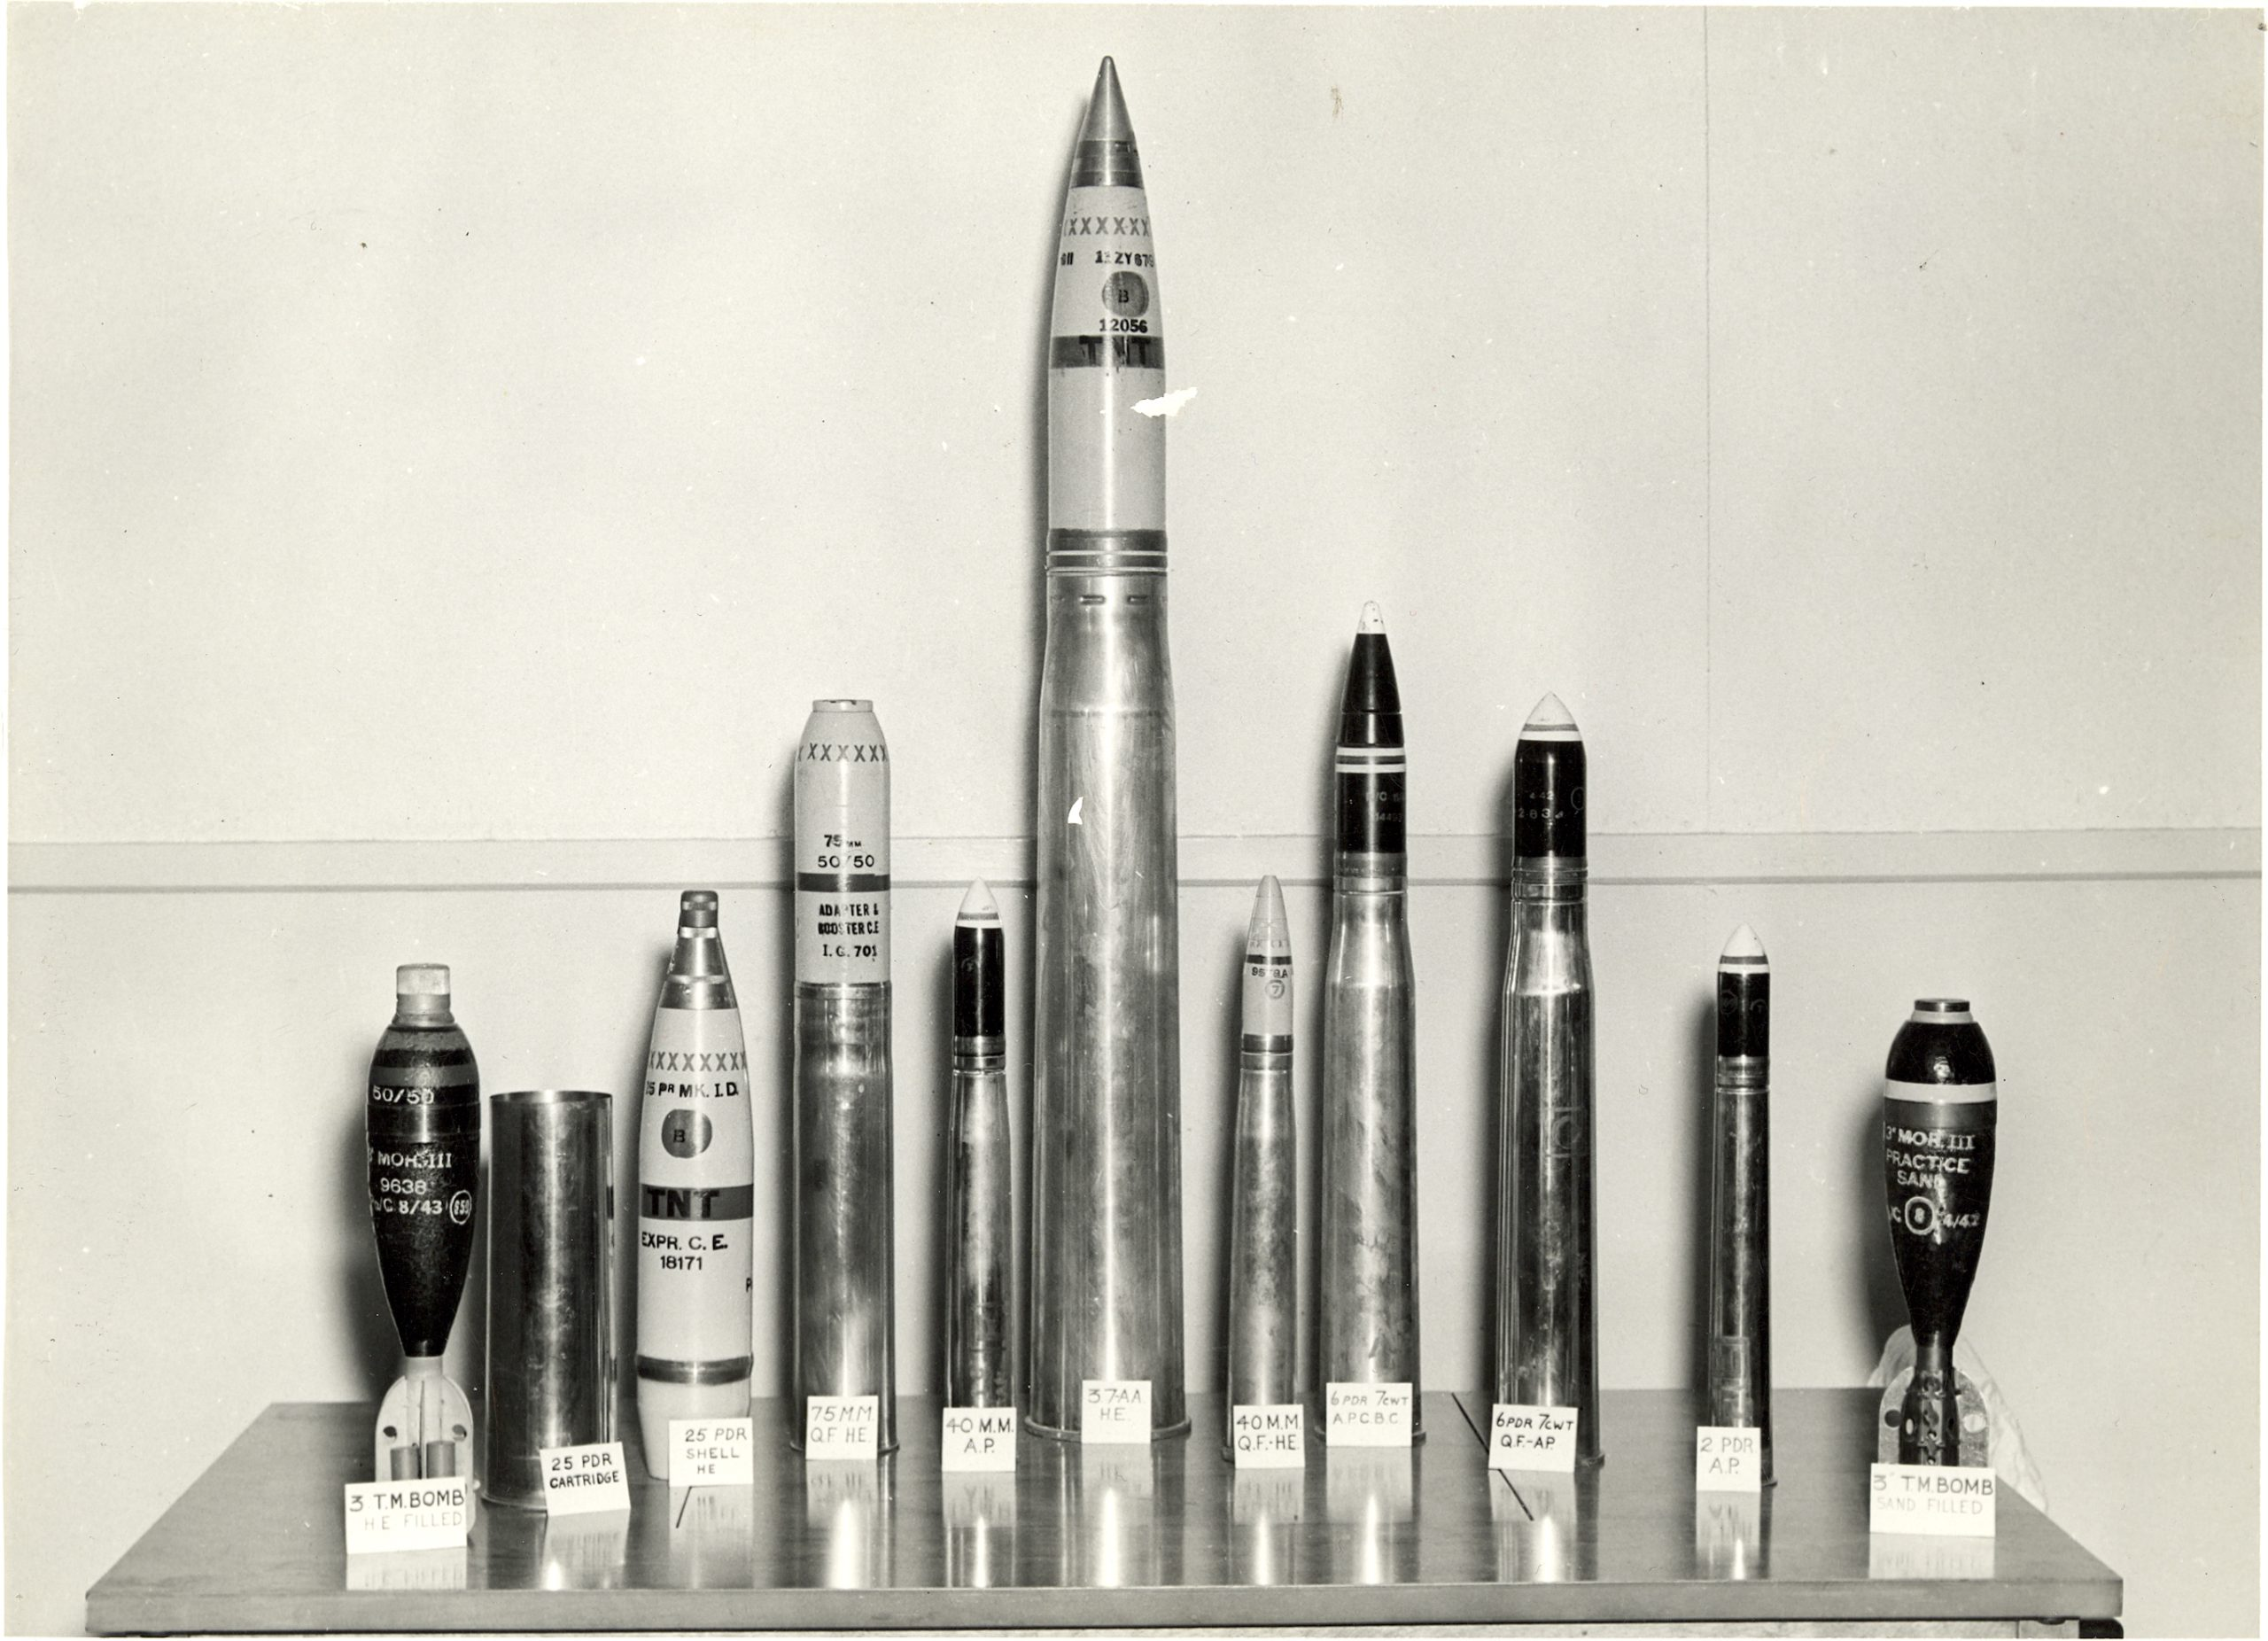 Defence Industries Limited - Shells and Mortars